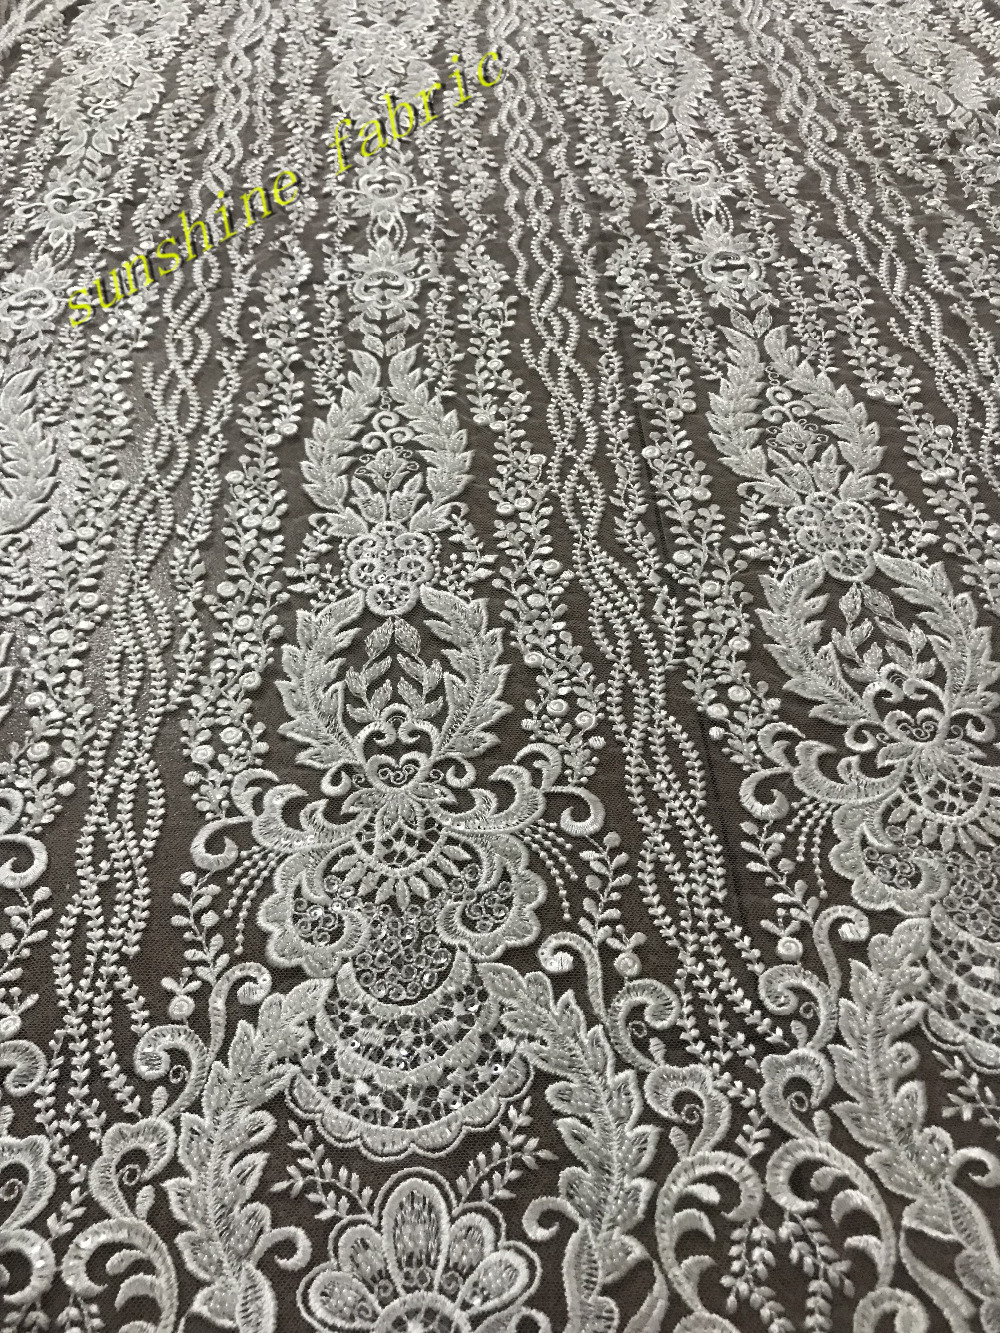 Beaded net tulle mesh nice embroidered french lace for show wedding evening  dress  b3ecb5d5cd61